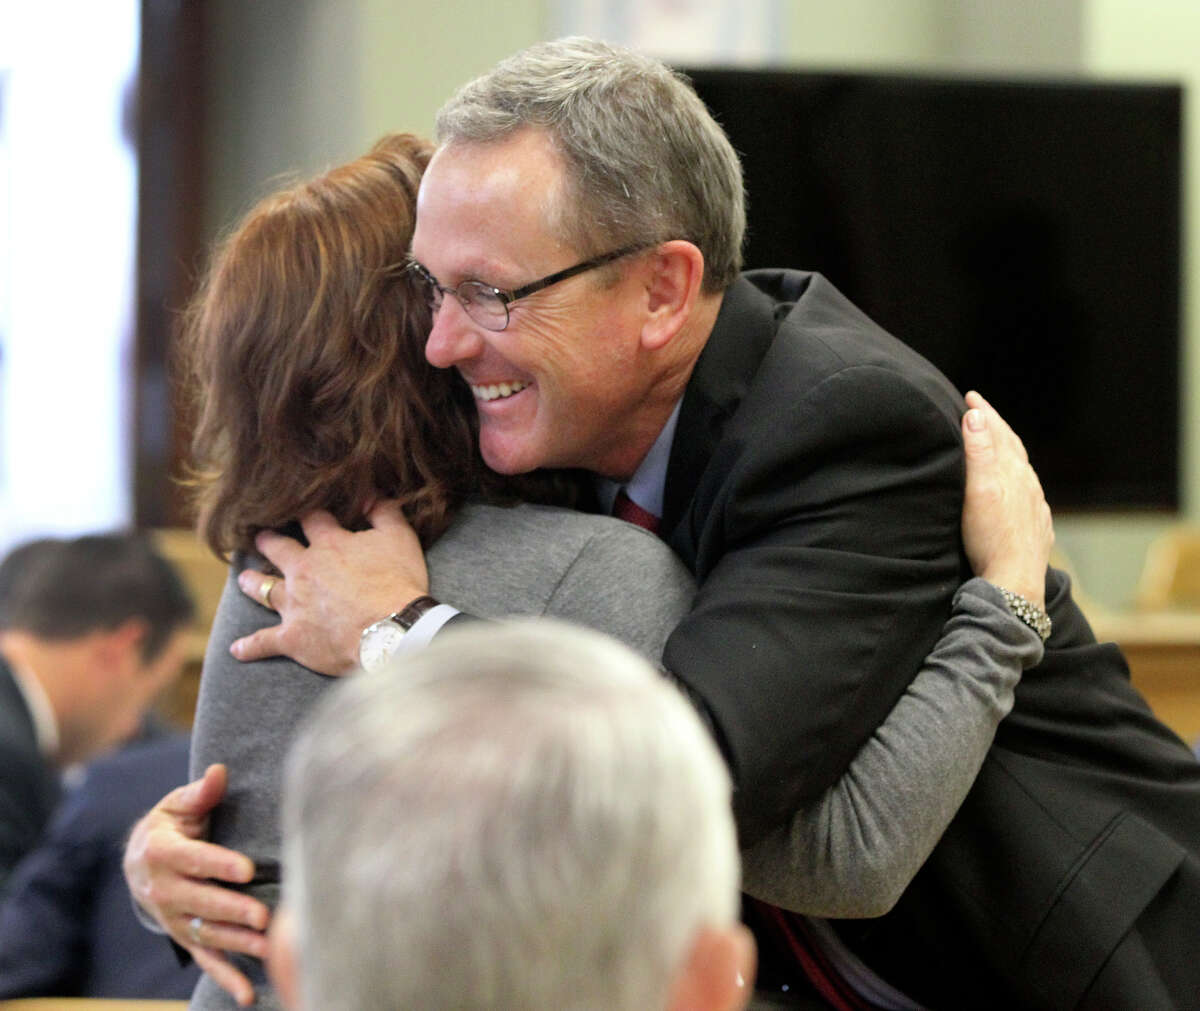 Attorney Mike McCrum (right) gets a hug from a supporter Monday November 17, 2014 in the 225th District Court at the Bexar County Courthouse during a contempt of court hearing. McCrum, serving as a special prosecutor in the case against Gov. Rick Perry, who is also accused of professional misconduct, could spend up to six months in jail if found guilty in contempt. After nearly a nine-month hiatus, the hearing resumed for McCrum.